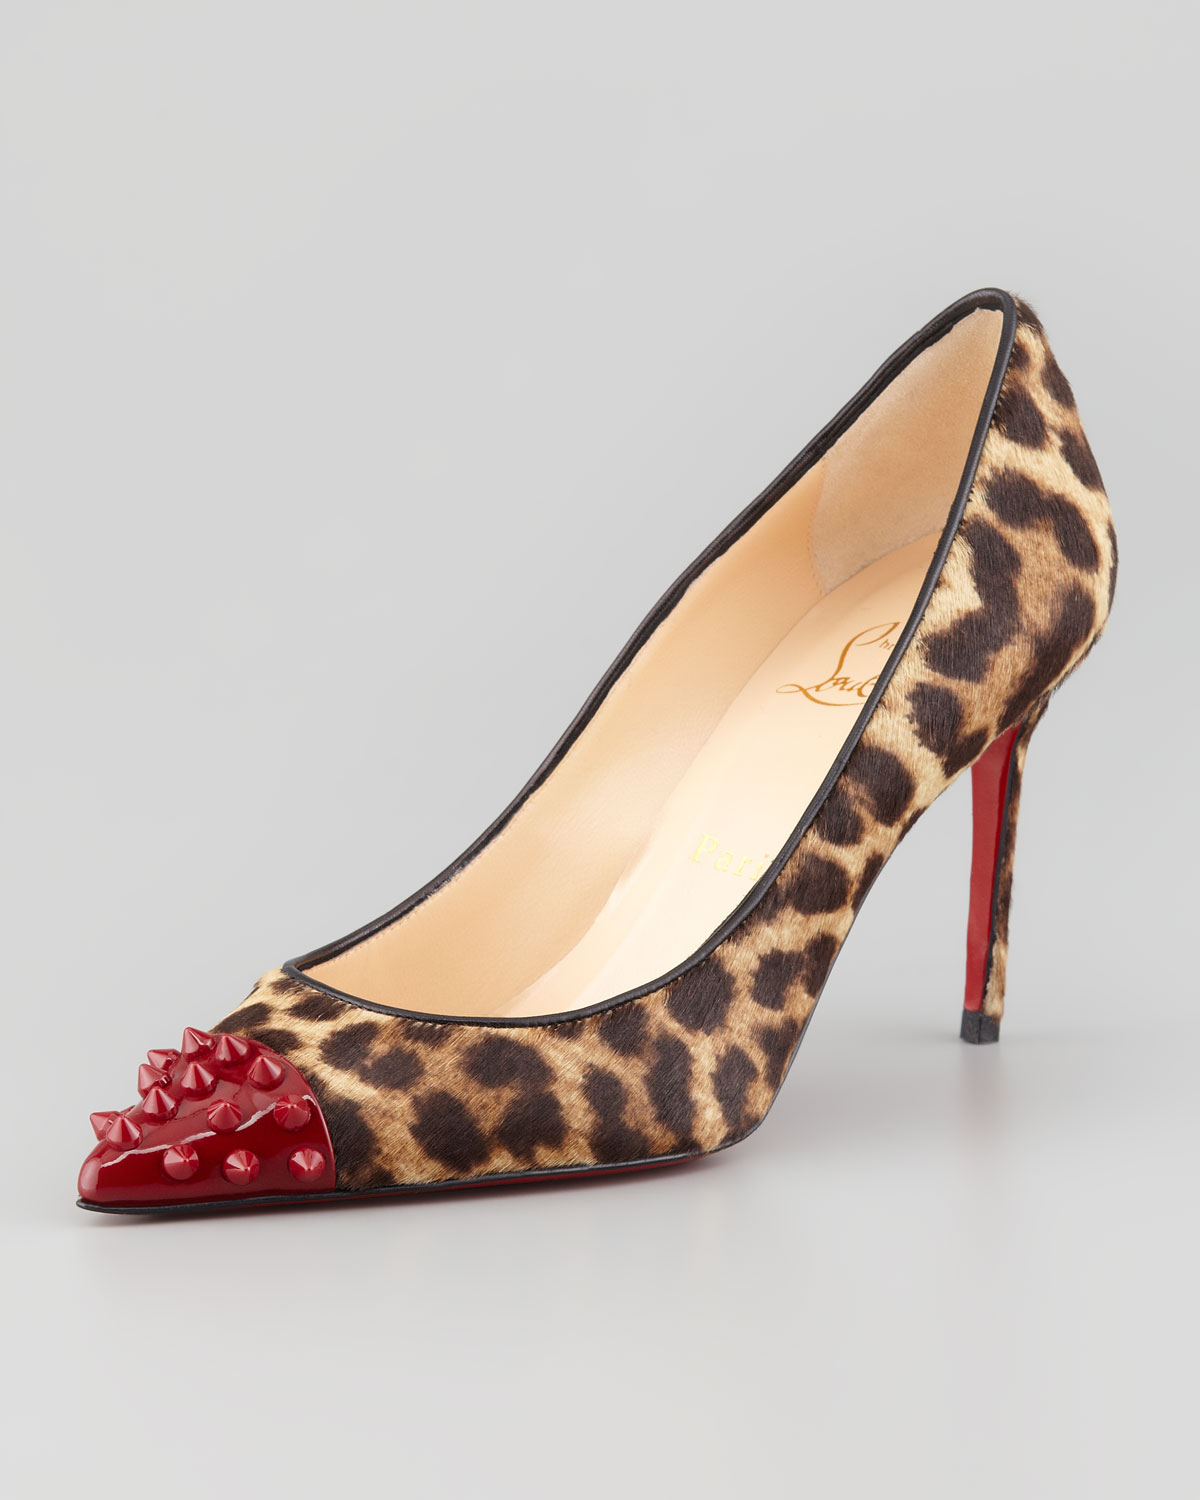 Christian louboutin Geo Spike-toe Leopard Calf Hair Red Sole Pump ...